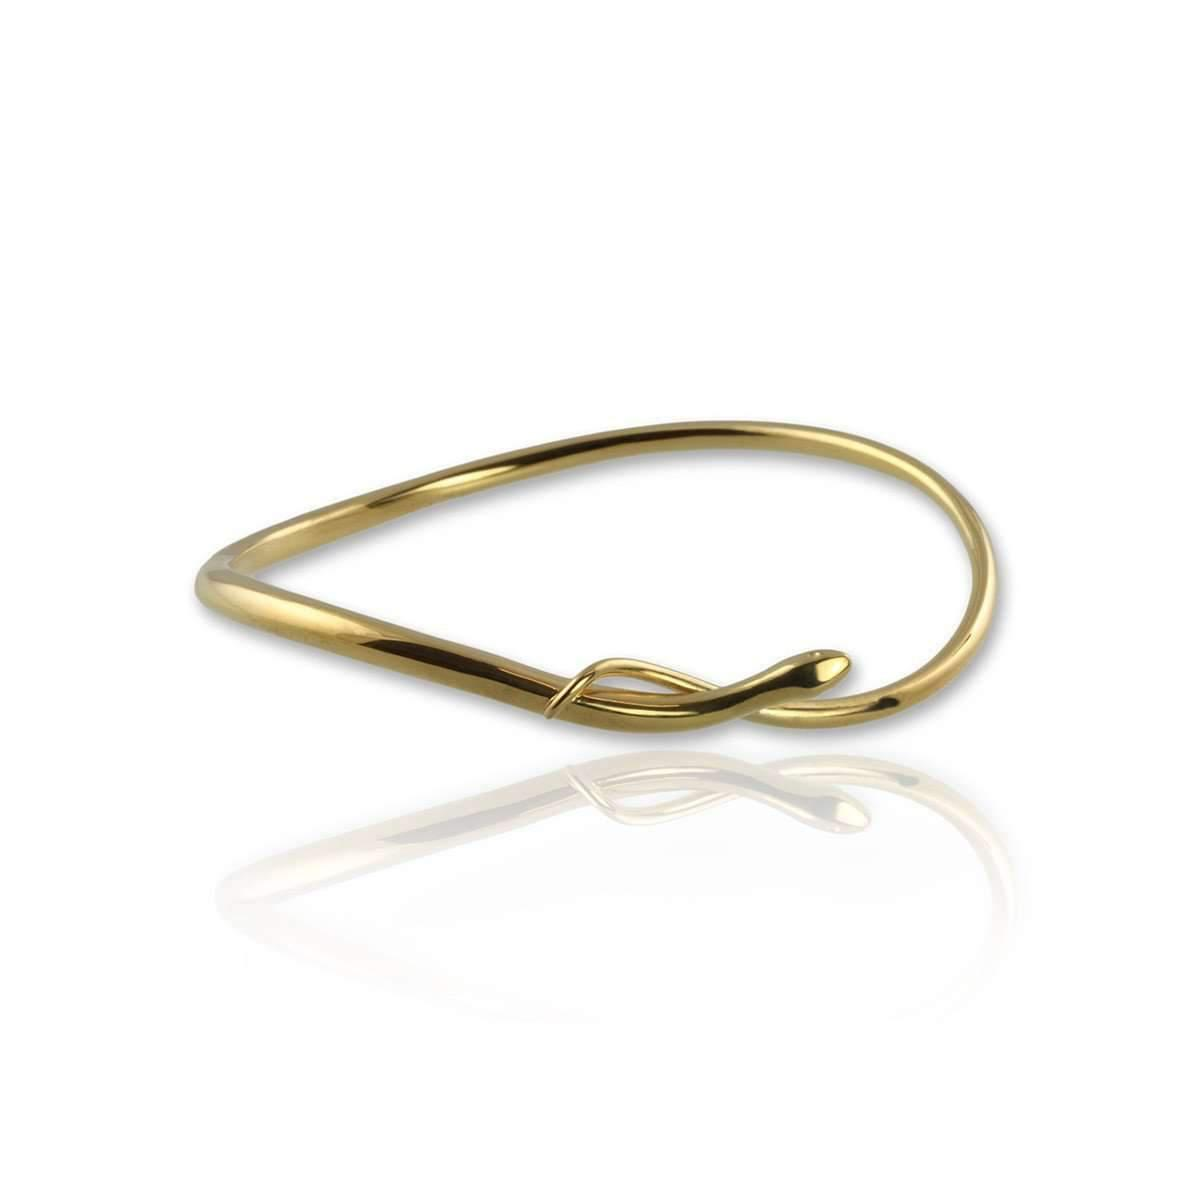 Jana Reinhardt Gold Plated Silver Snake Bangle With Black Diamonds